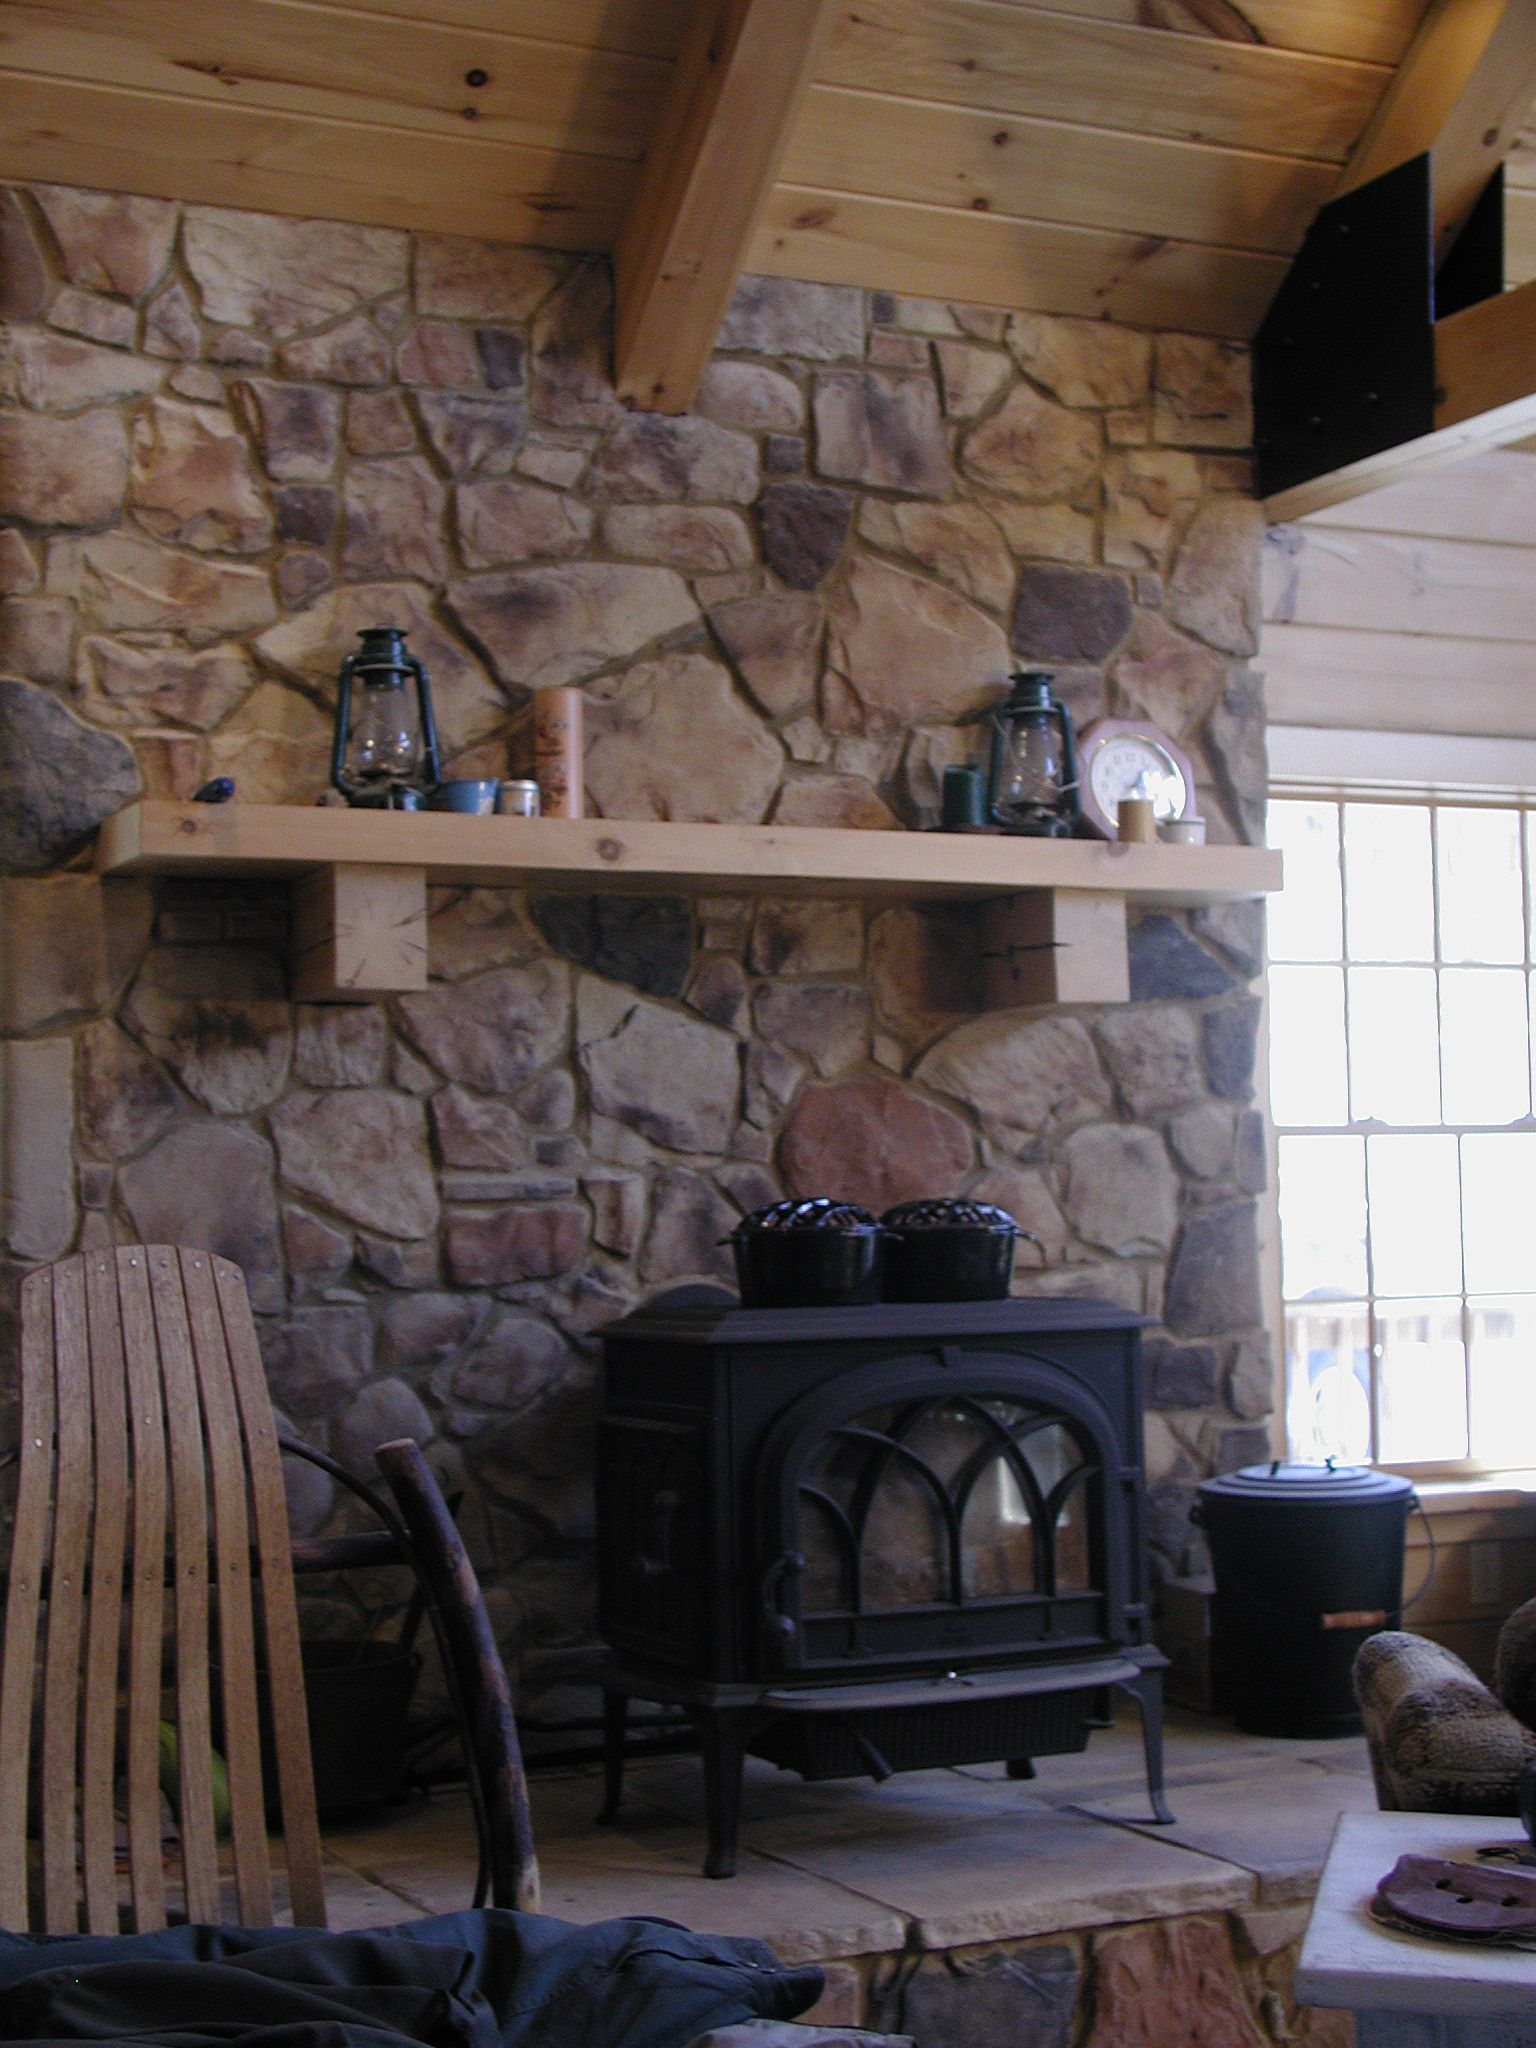 Wood stove surround ideas - Similar To What I D Imagined Except For Stove Itself Looks A Little Funny Without The Stove Pipe Visible